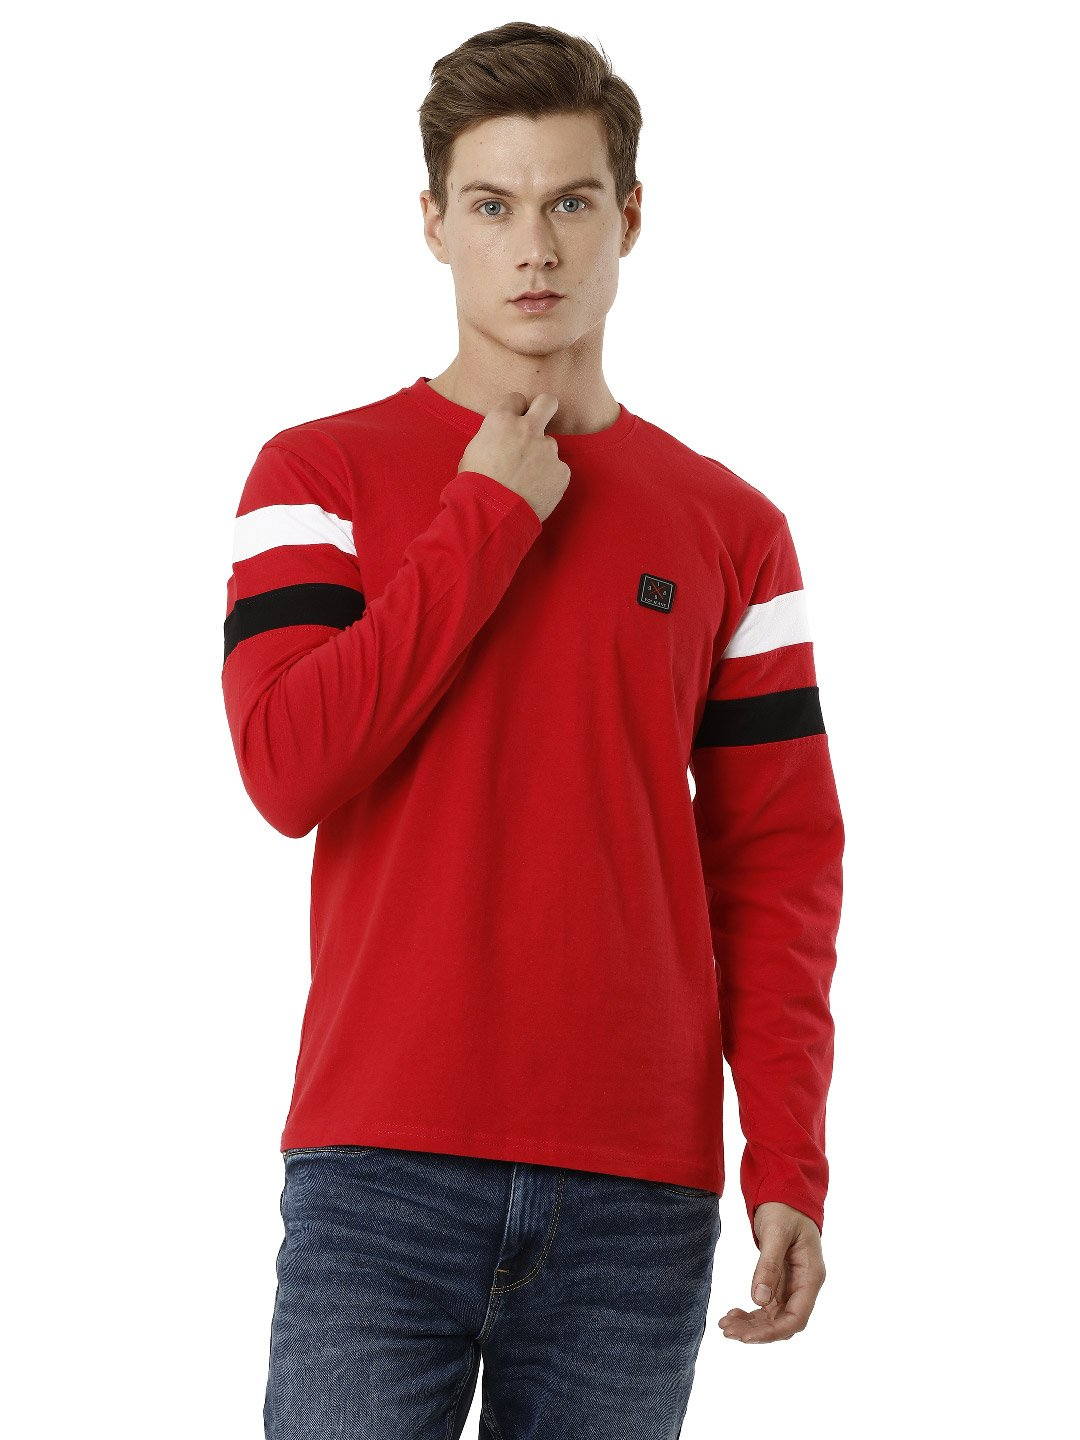 Voi Jeans | Red T-Shirts (VOTS1447)